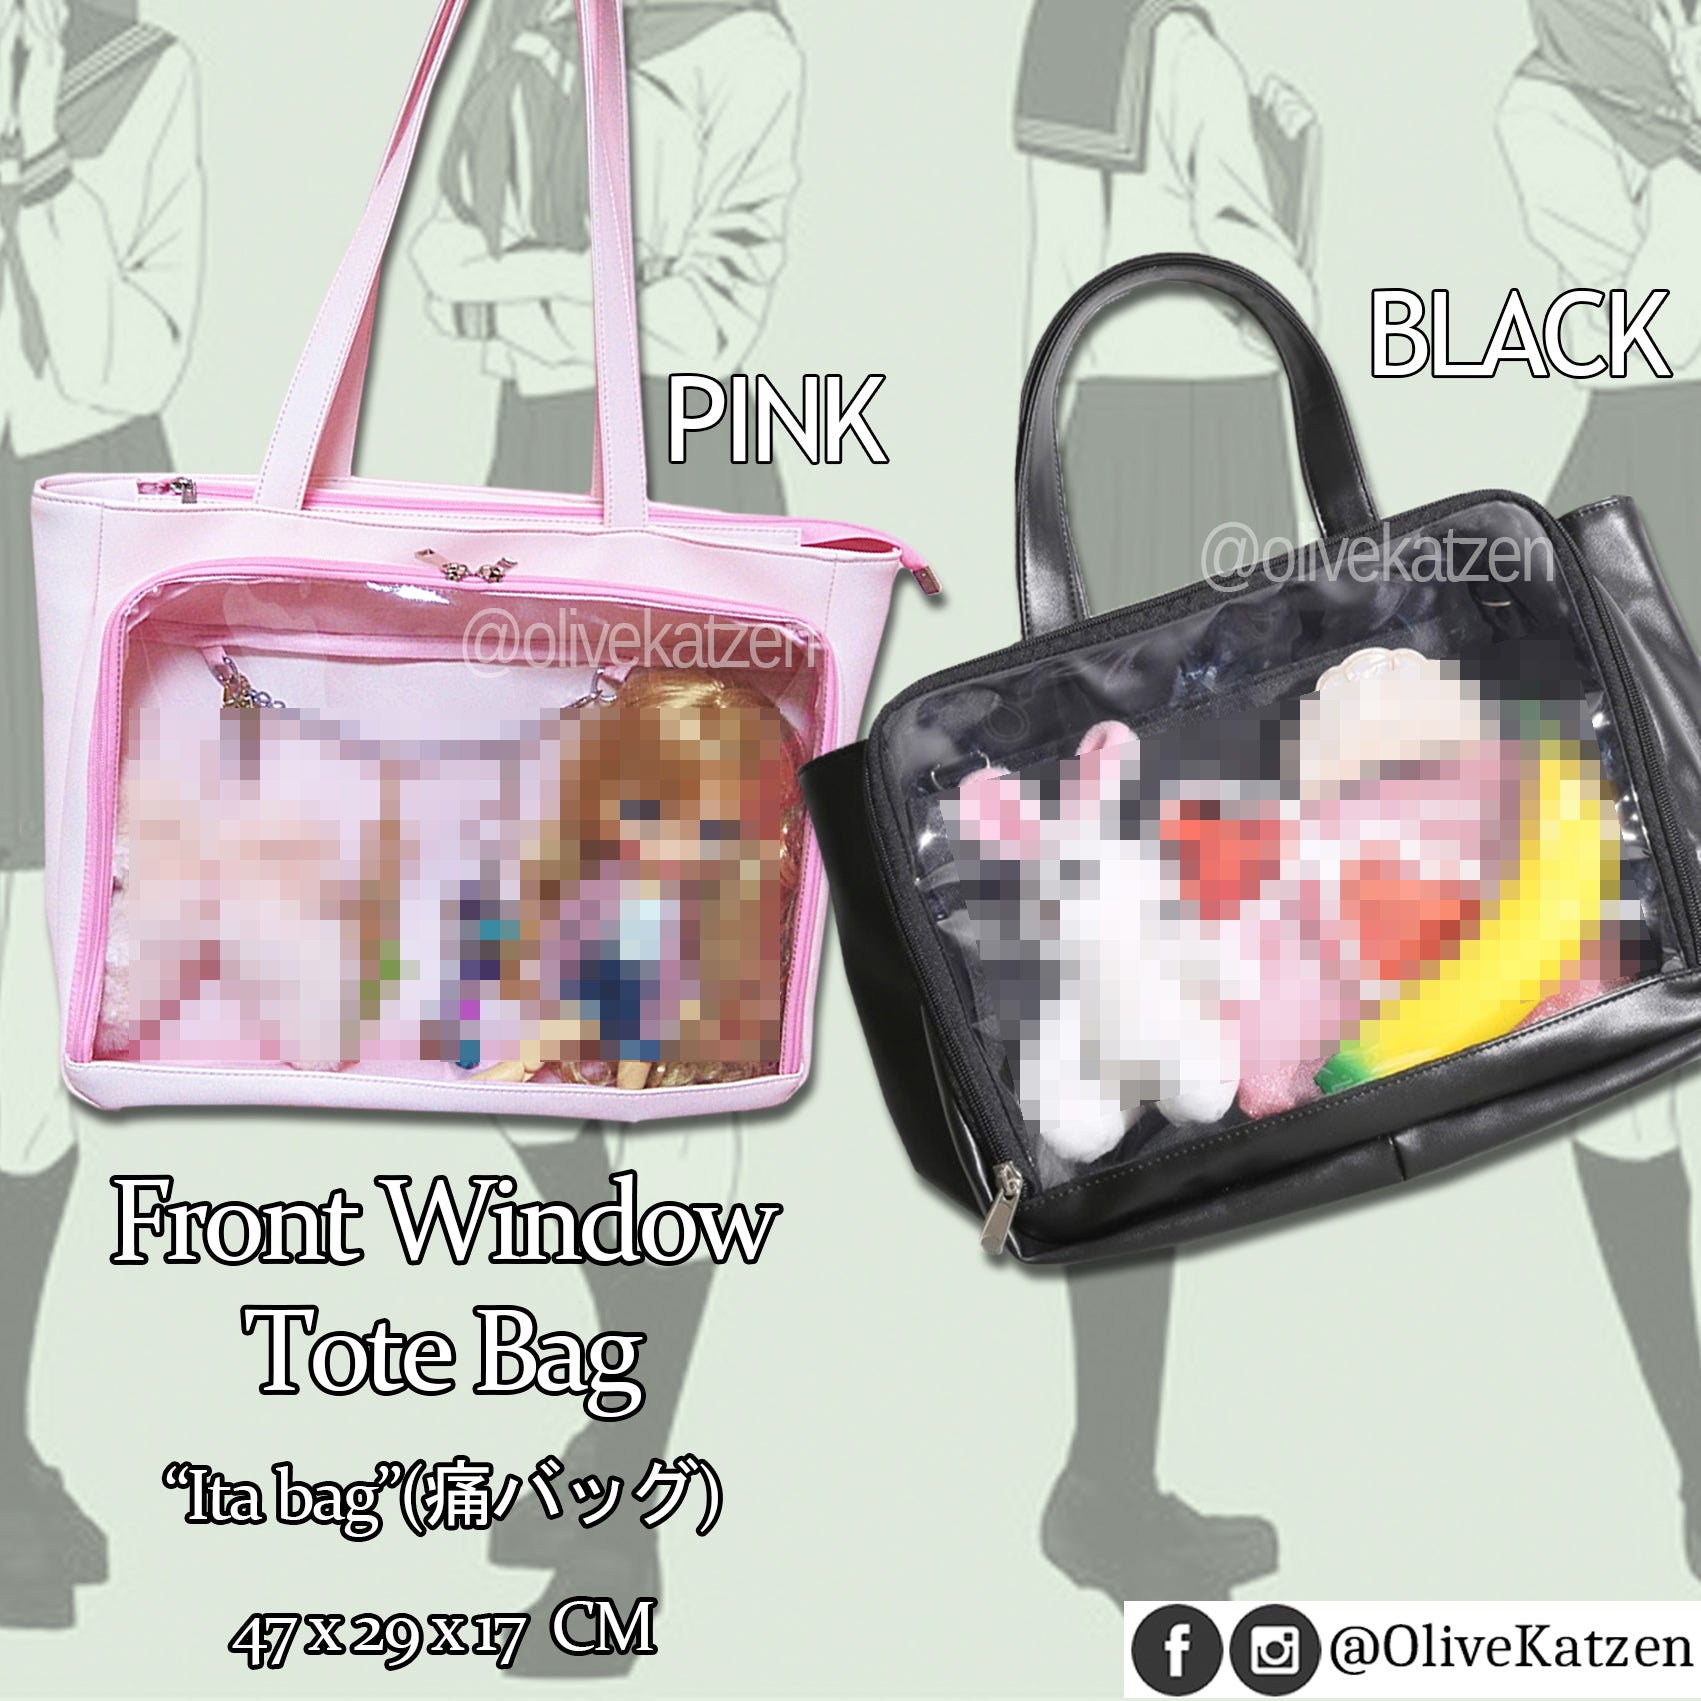 "Front Window Tote ""Ita Bag"" (痛バッグ)"